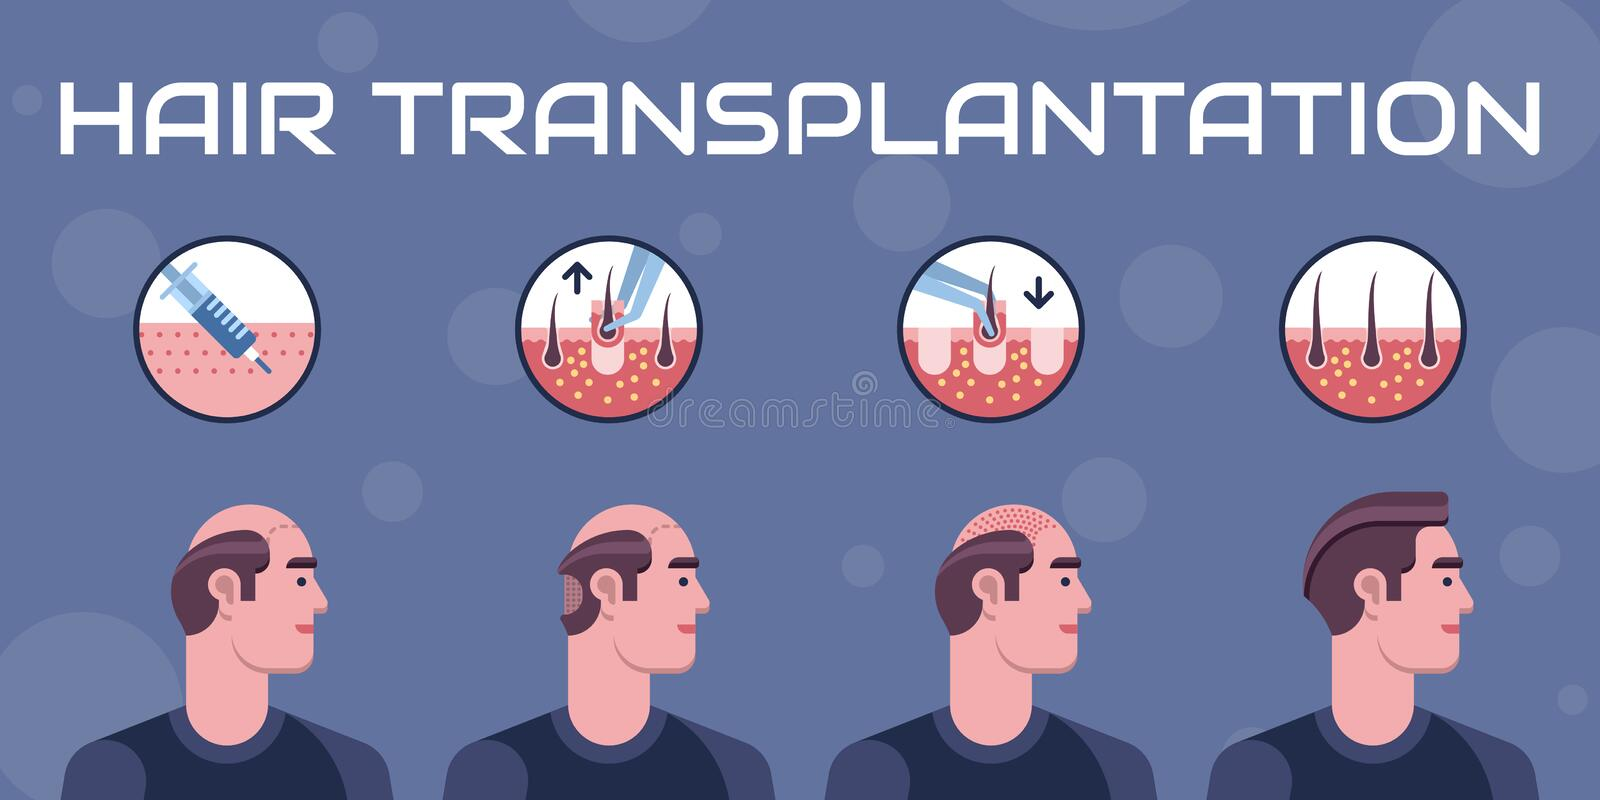 Étapes de transplantation de cheveux illustration libre de droits